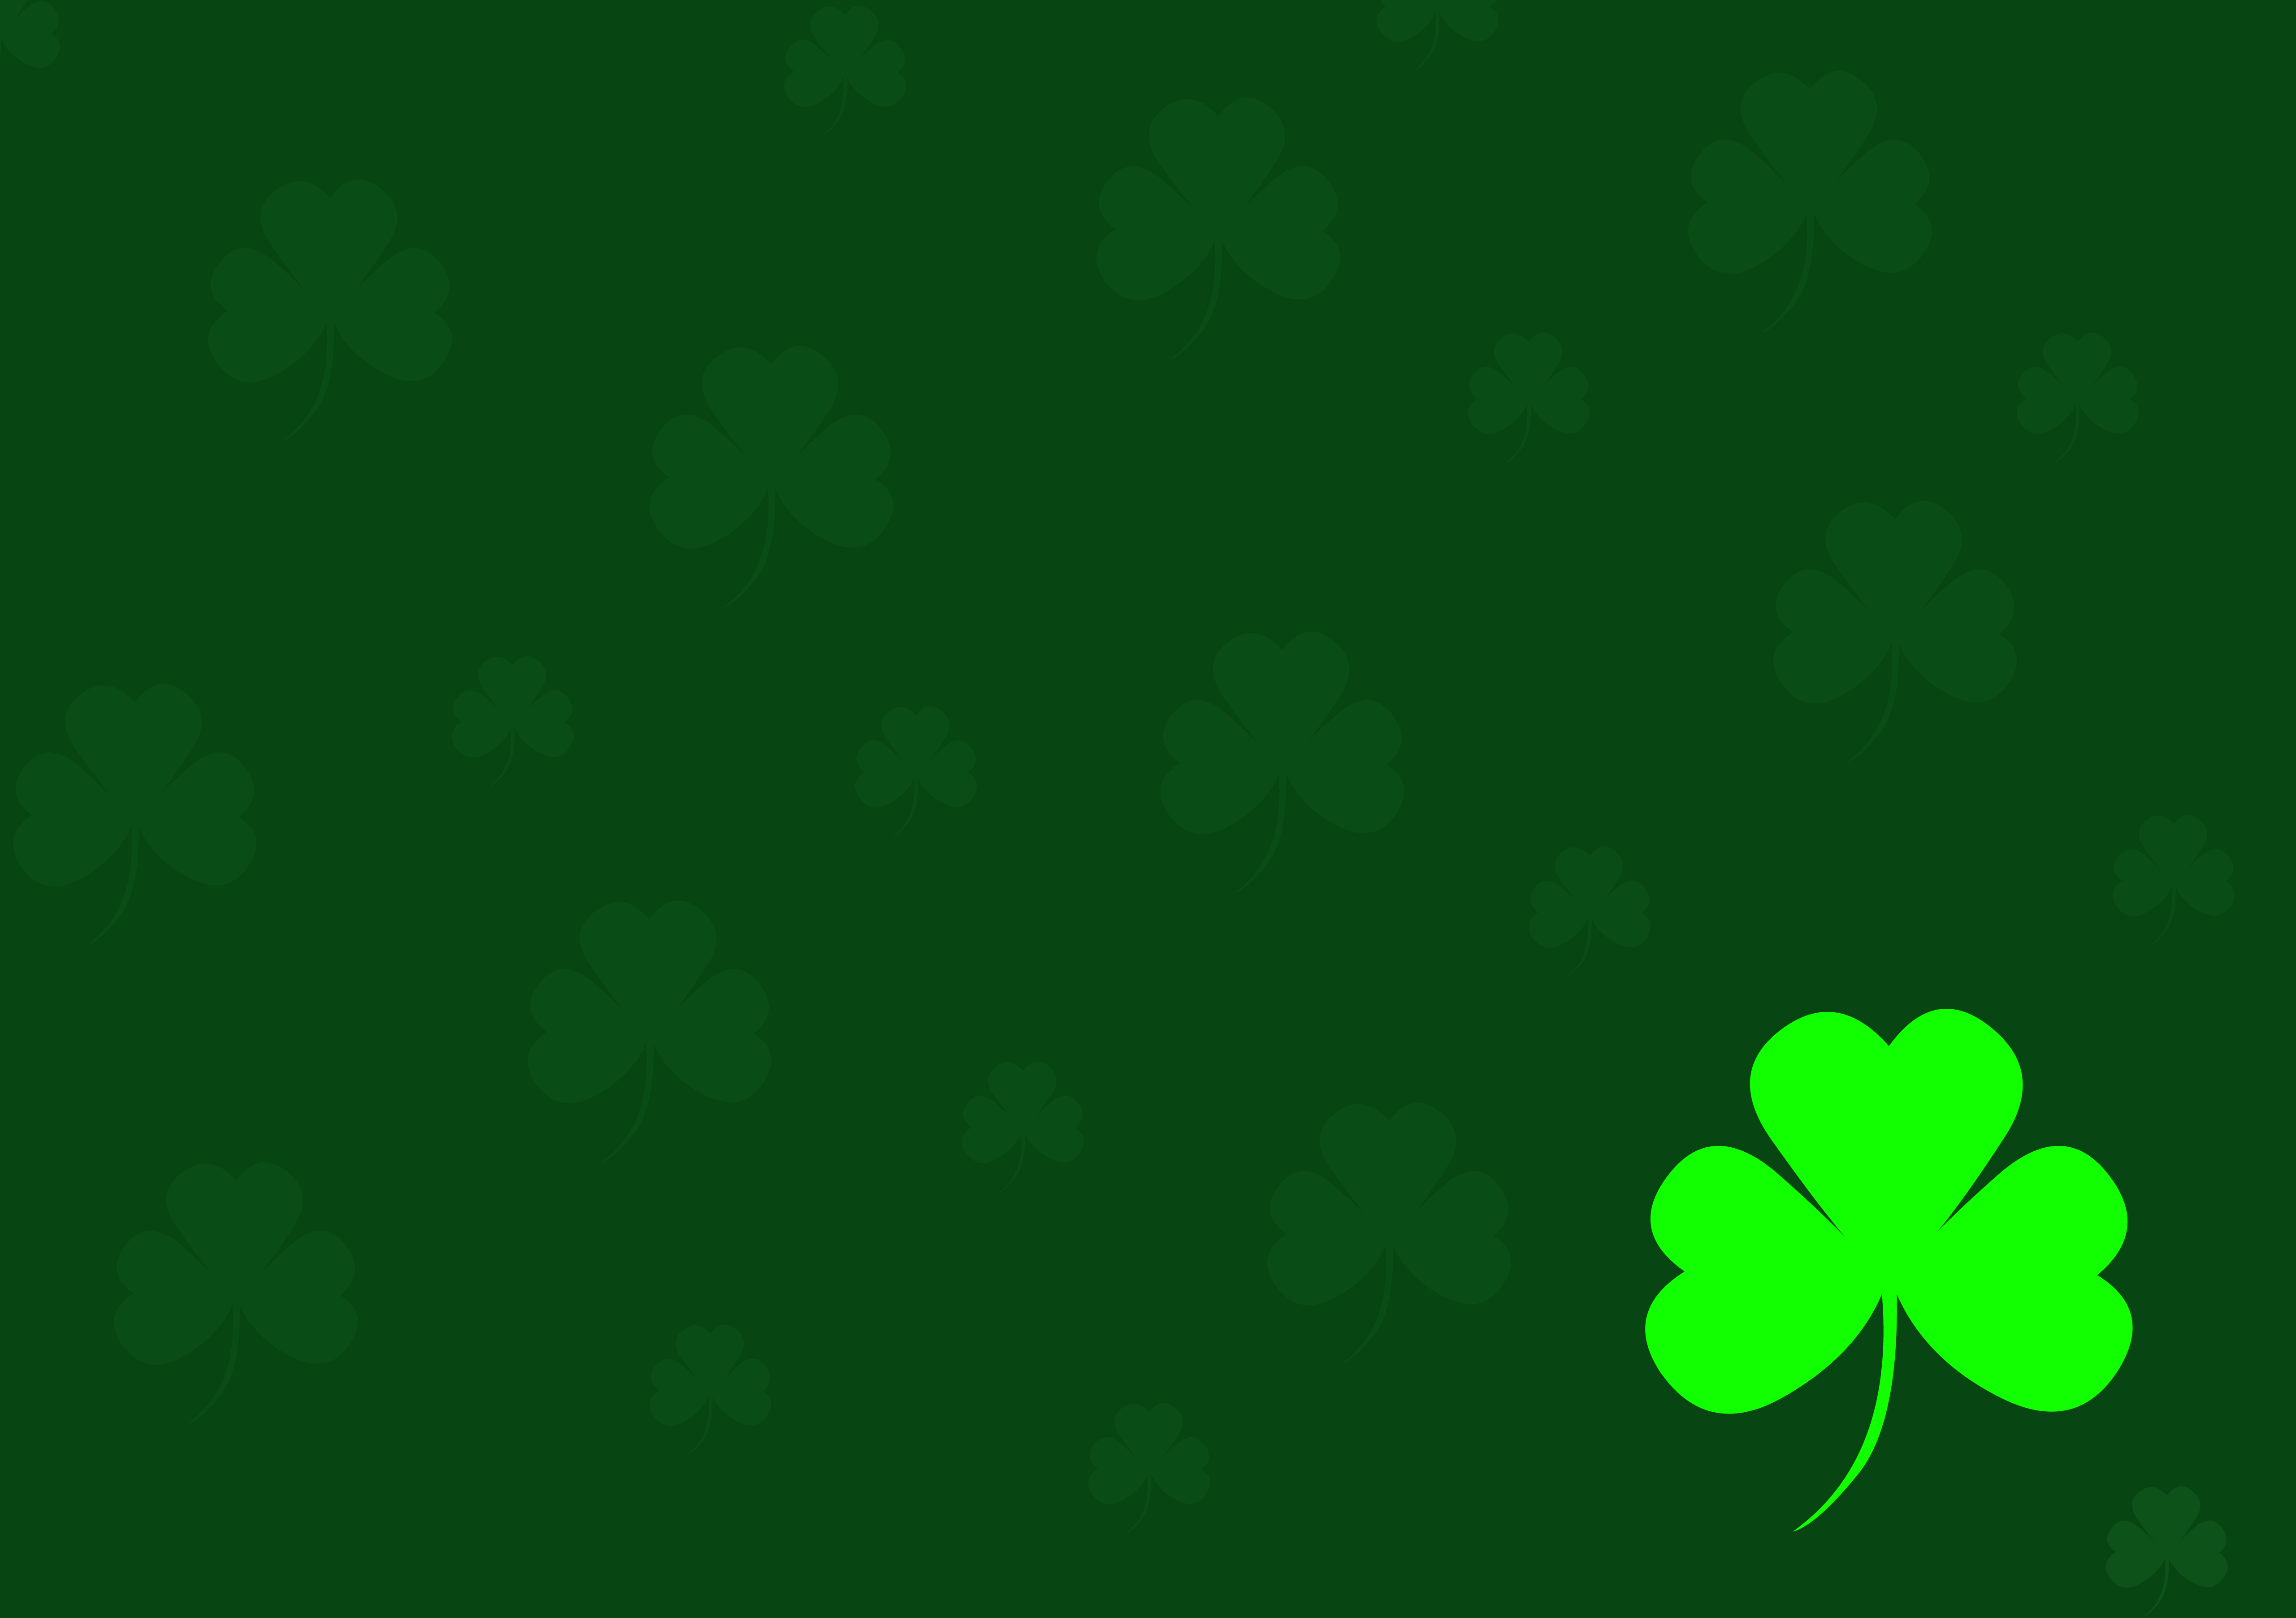 St. Patricks Day Free Images | Free St. Patricks Day Backgrounds and ...